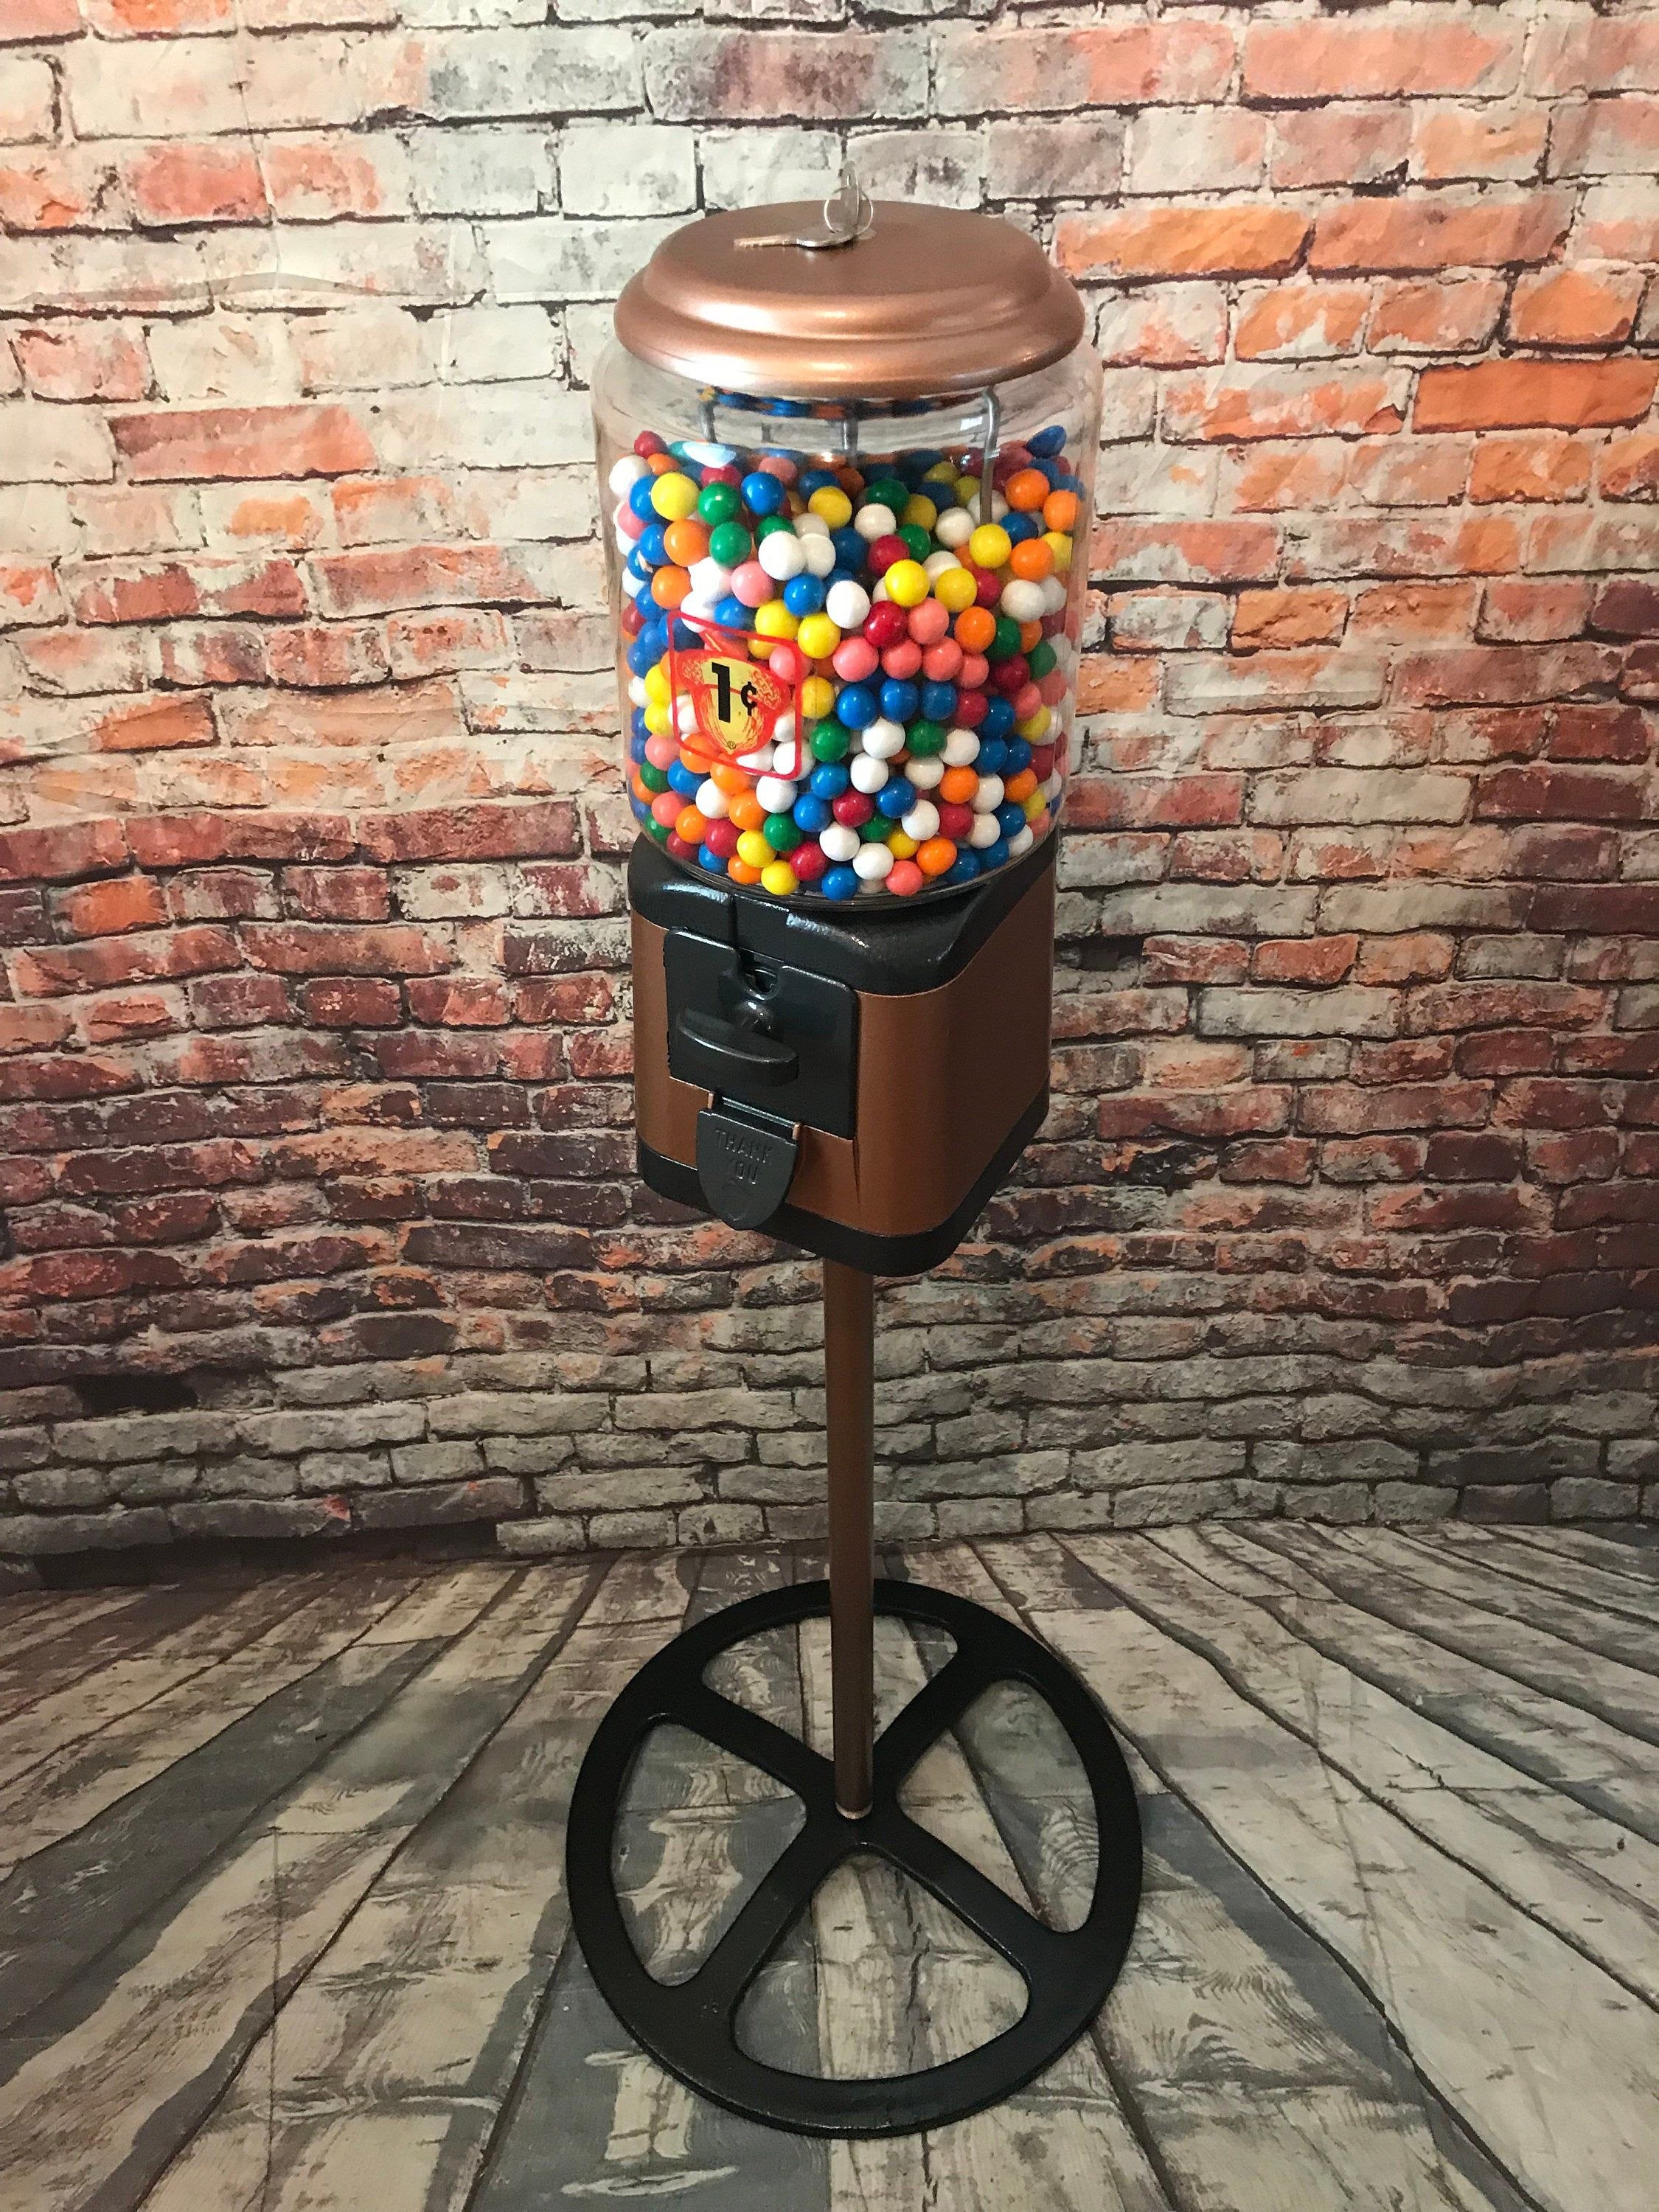 vintage penny Acorn gumball candy machine 1 cent gum machine with wheel stand